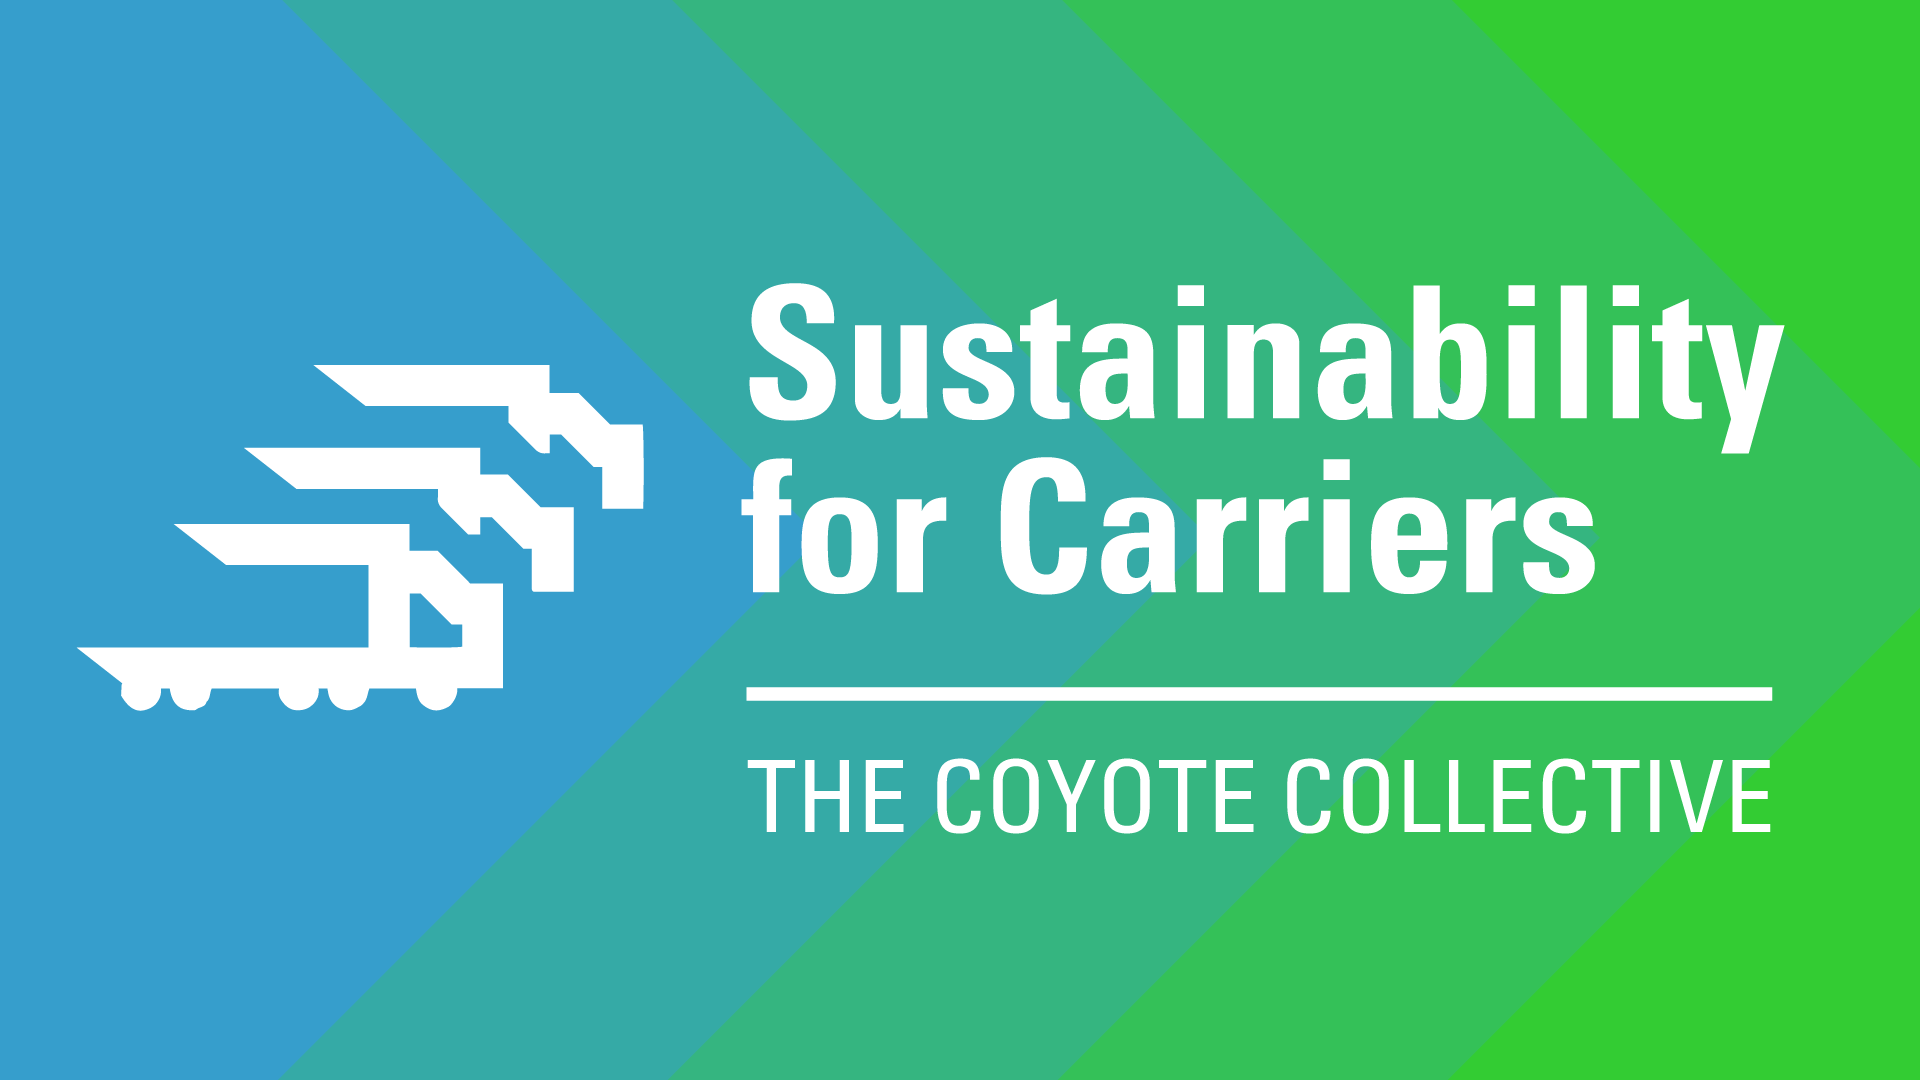 Sustainability for Carriers header graphic